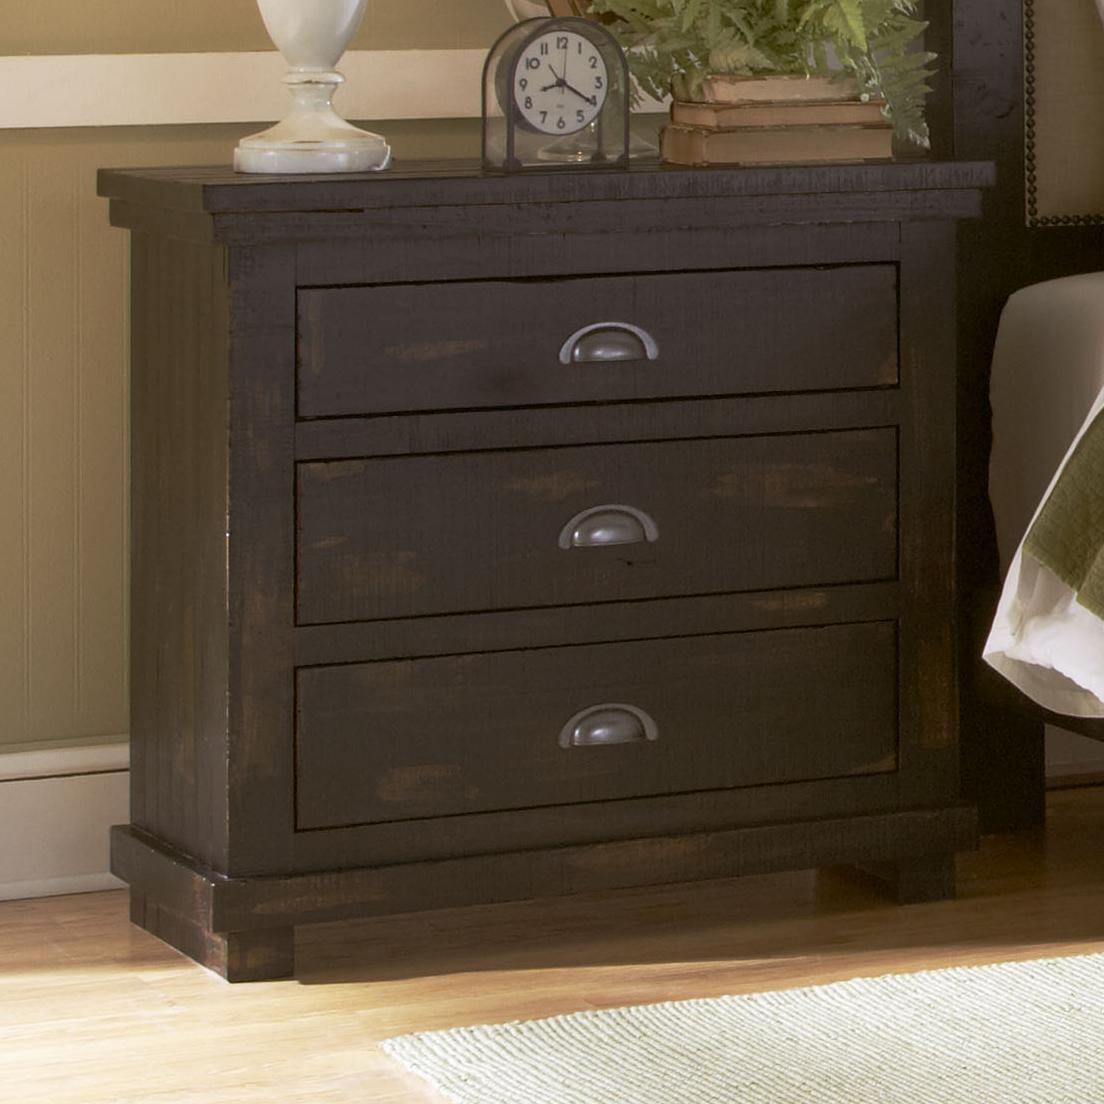 Progressive furniture willow p612 43 distressed pine for Bedroom furniture night stands